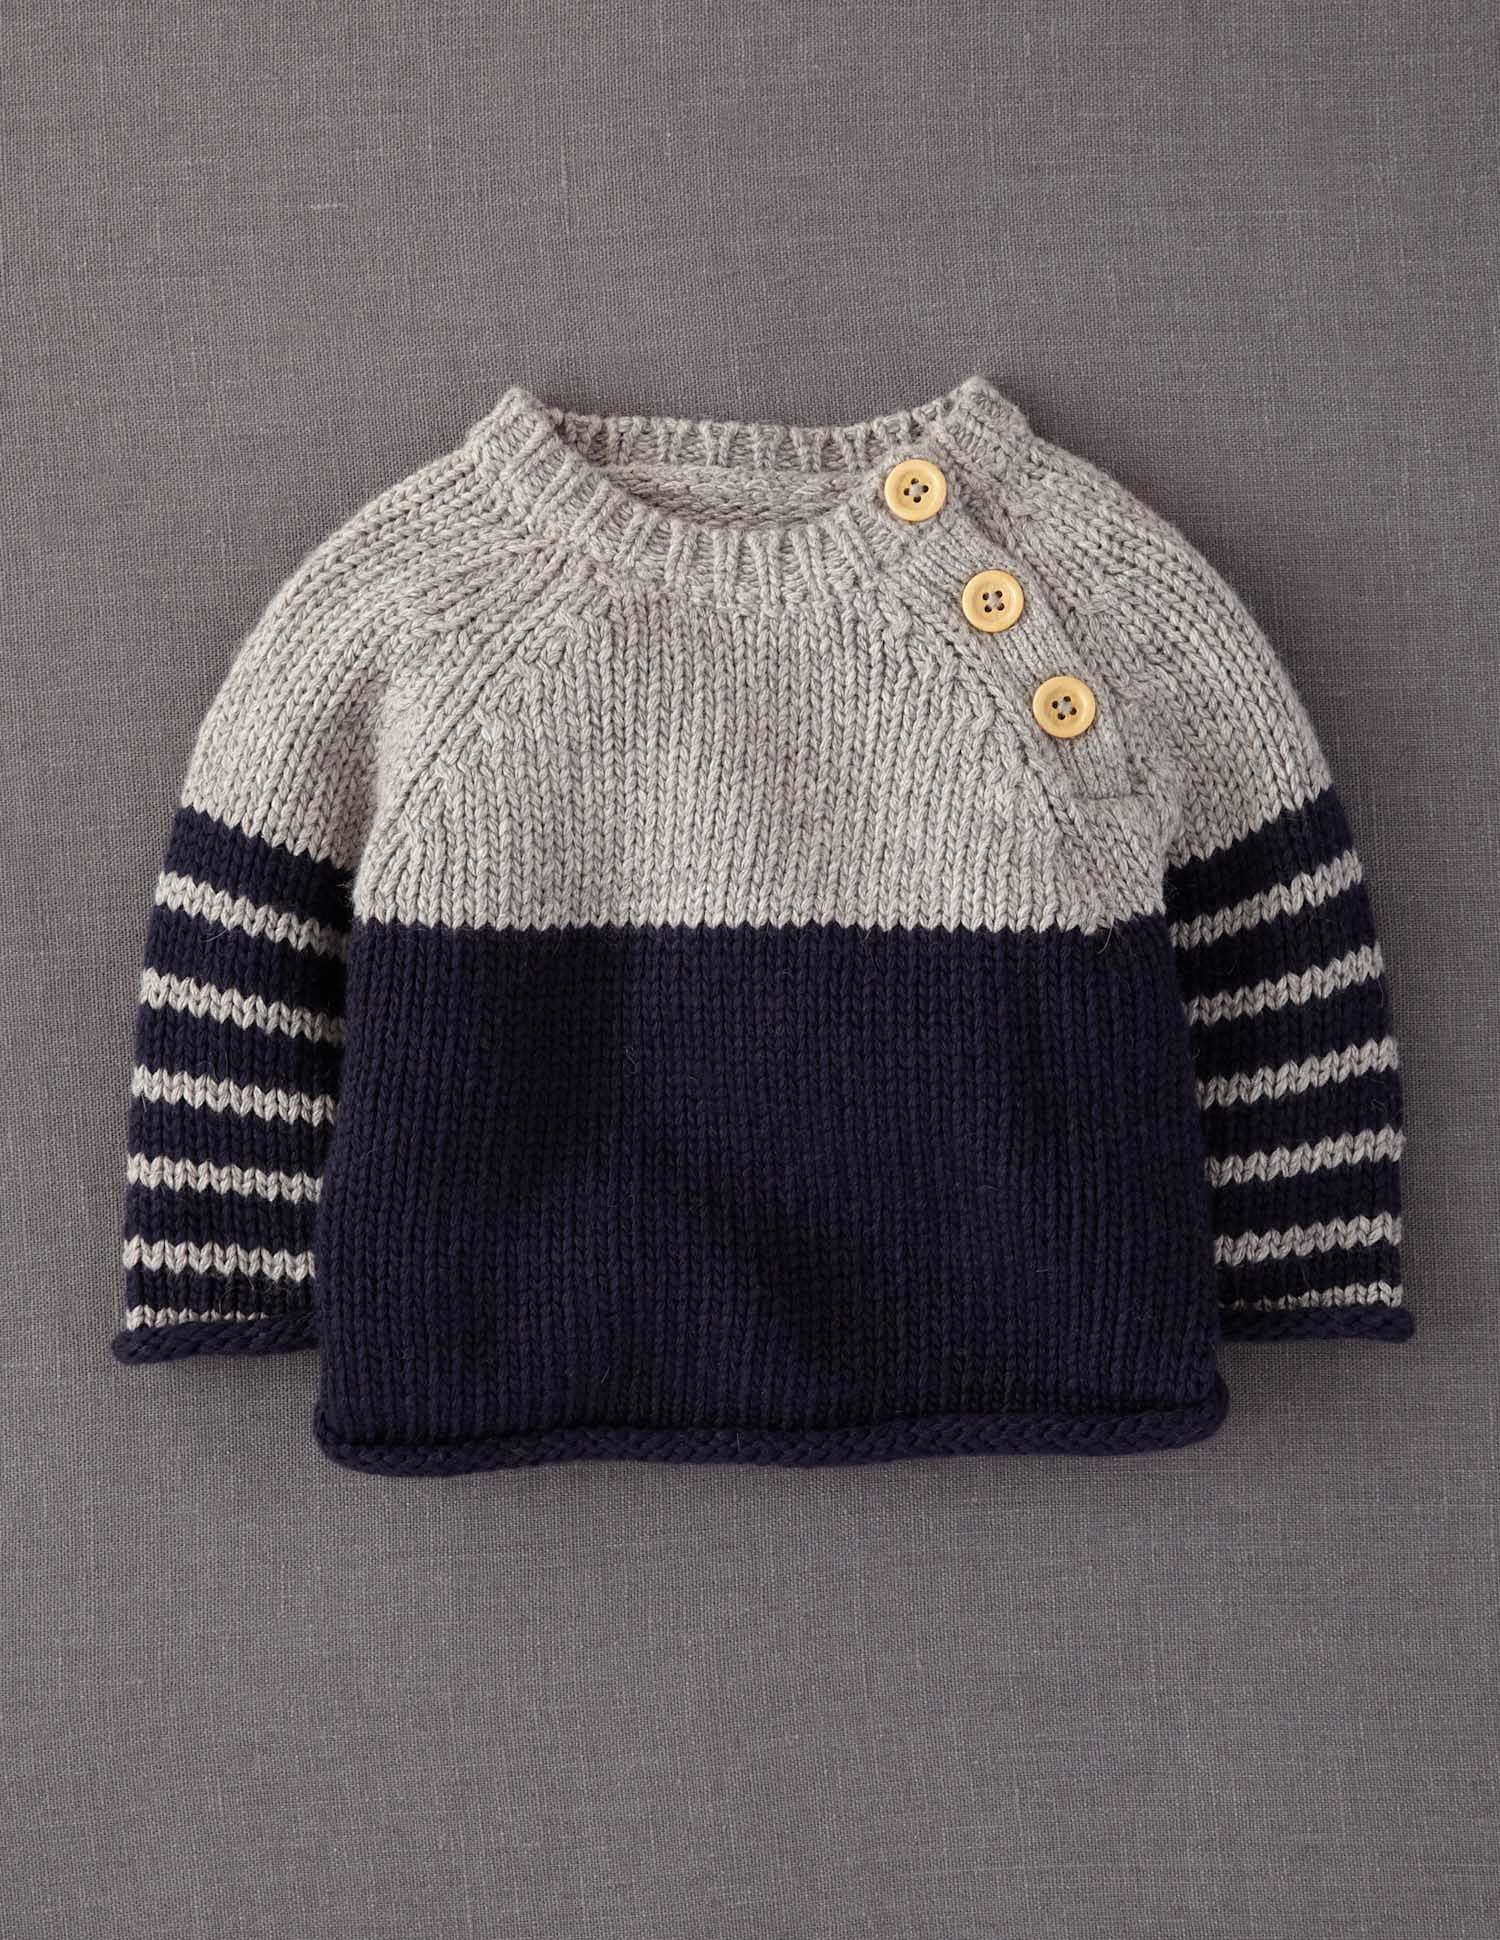 Knitting Pattern For Newborn Jumper : Jersey de invierno nino DIY en Bordar Vigo Informacion e inscripciones en...